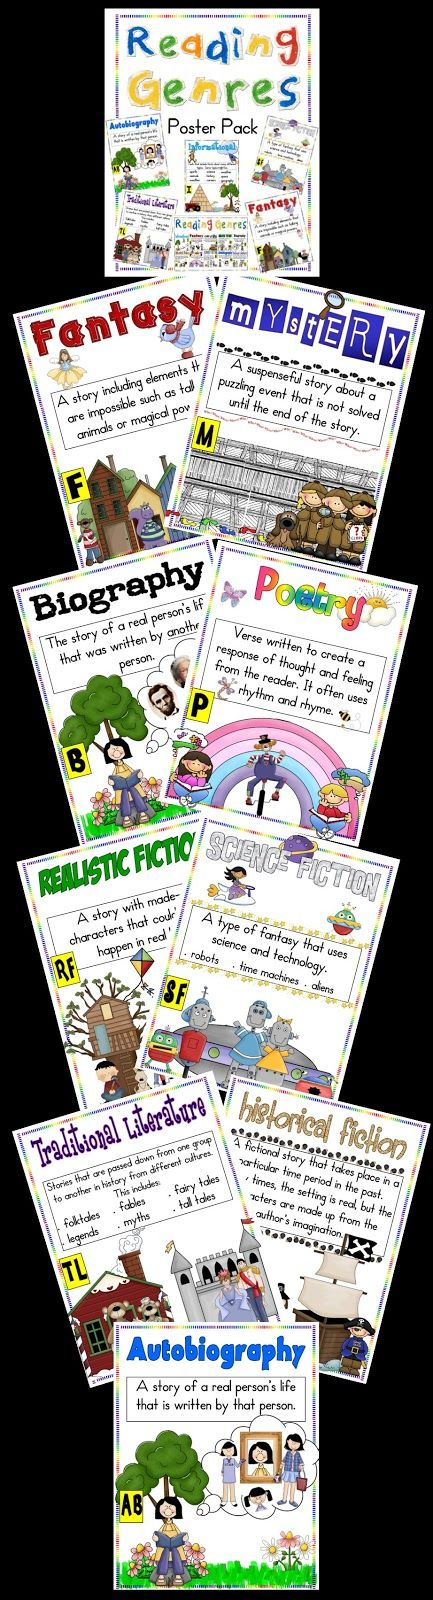 Teaching genres is fun and easy with these colorful posters. My kids refer to them all the time and are absolute pros when it comes to identifying genres!